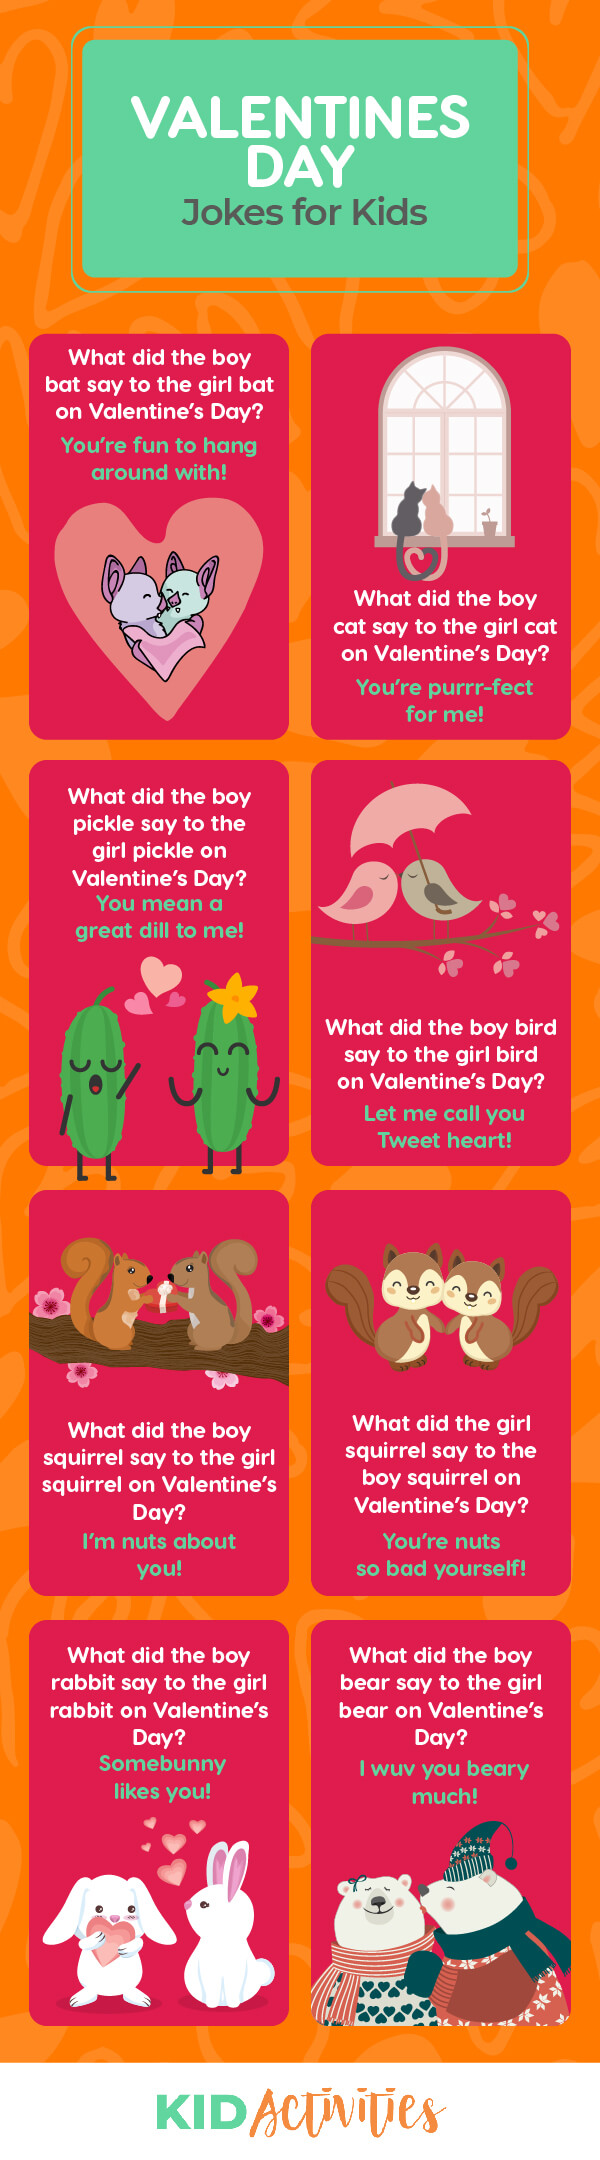 """An animated infographic with 8 different kid friendly jokes on the card. The jokes our the same ones within the post. There are different animated pictures depicting love like cats kissing, two cats sitting at a window with heads touch. etc. Heading reads """"Valentines Day Jokes for Kids."""""""